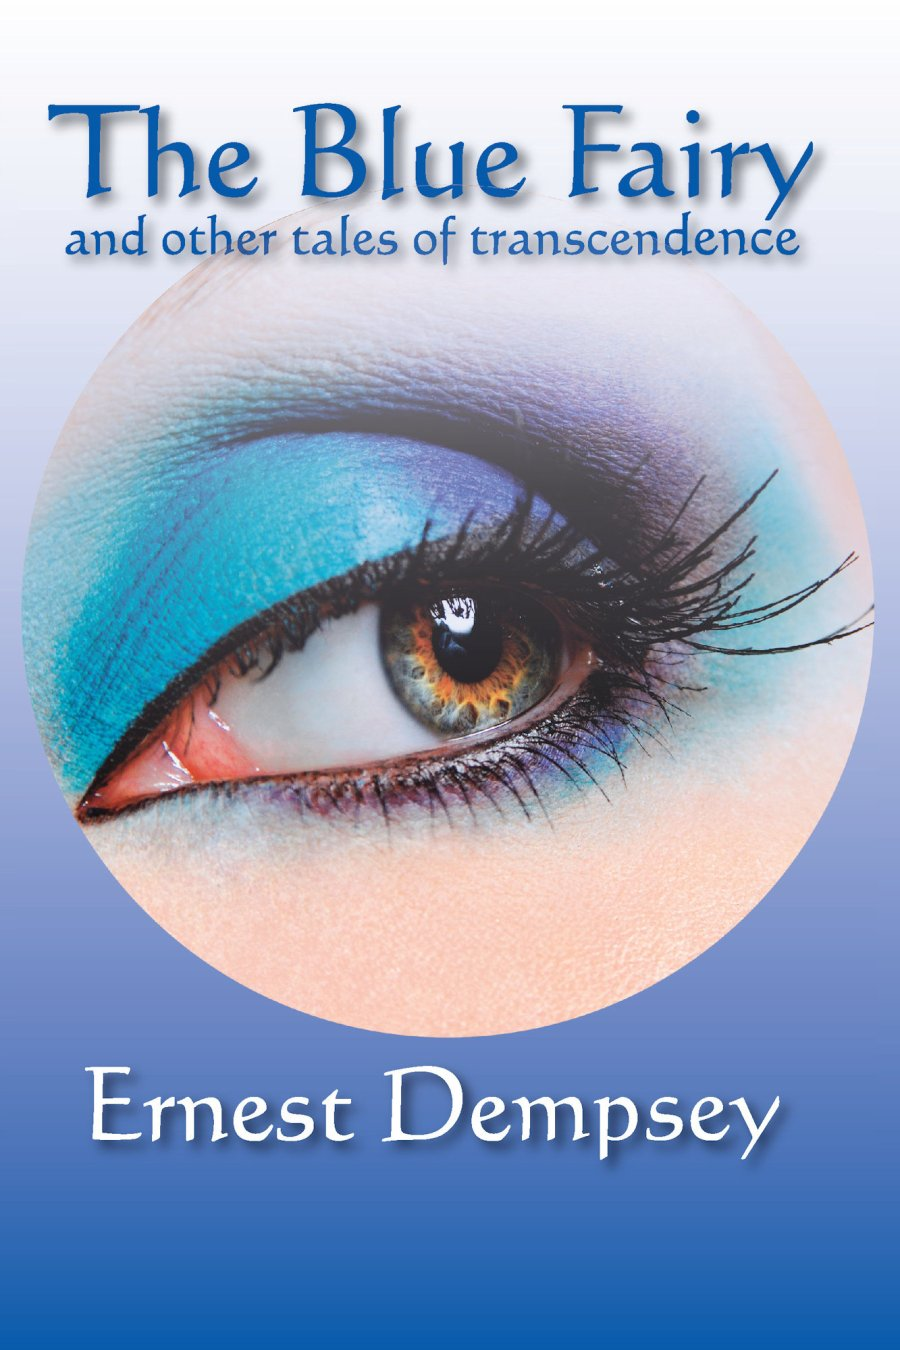 The Blue Fairy: and other Tales of Transcendence 978-1-932690-92-7